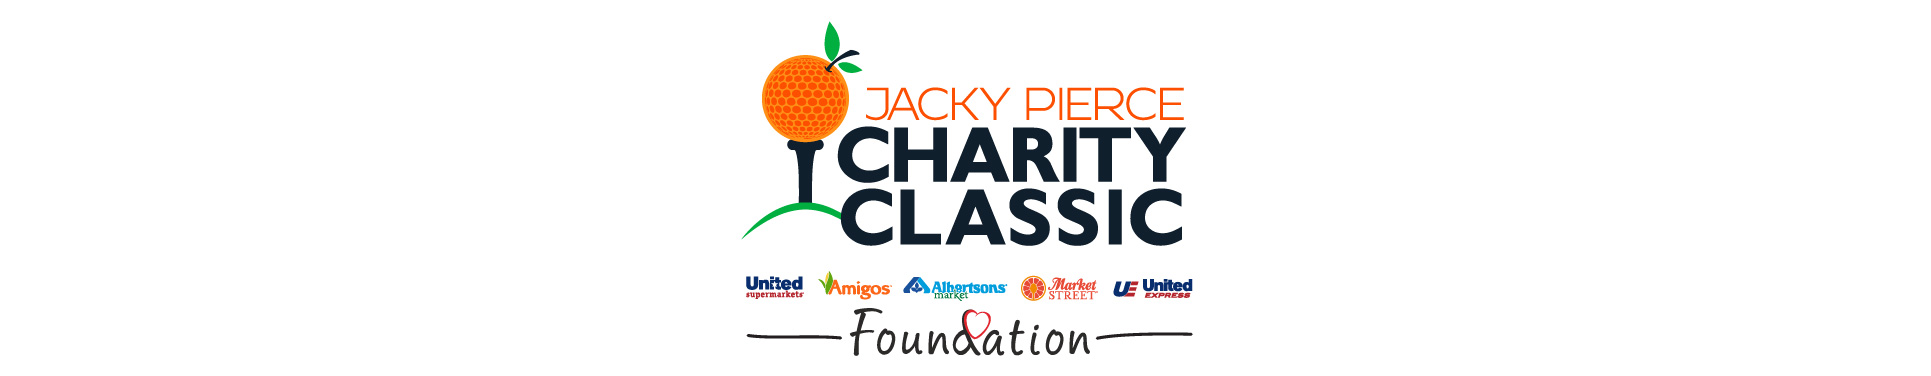 2017 Jacky Pierce Charity Classic